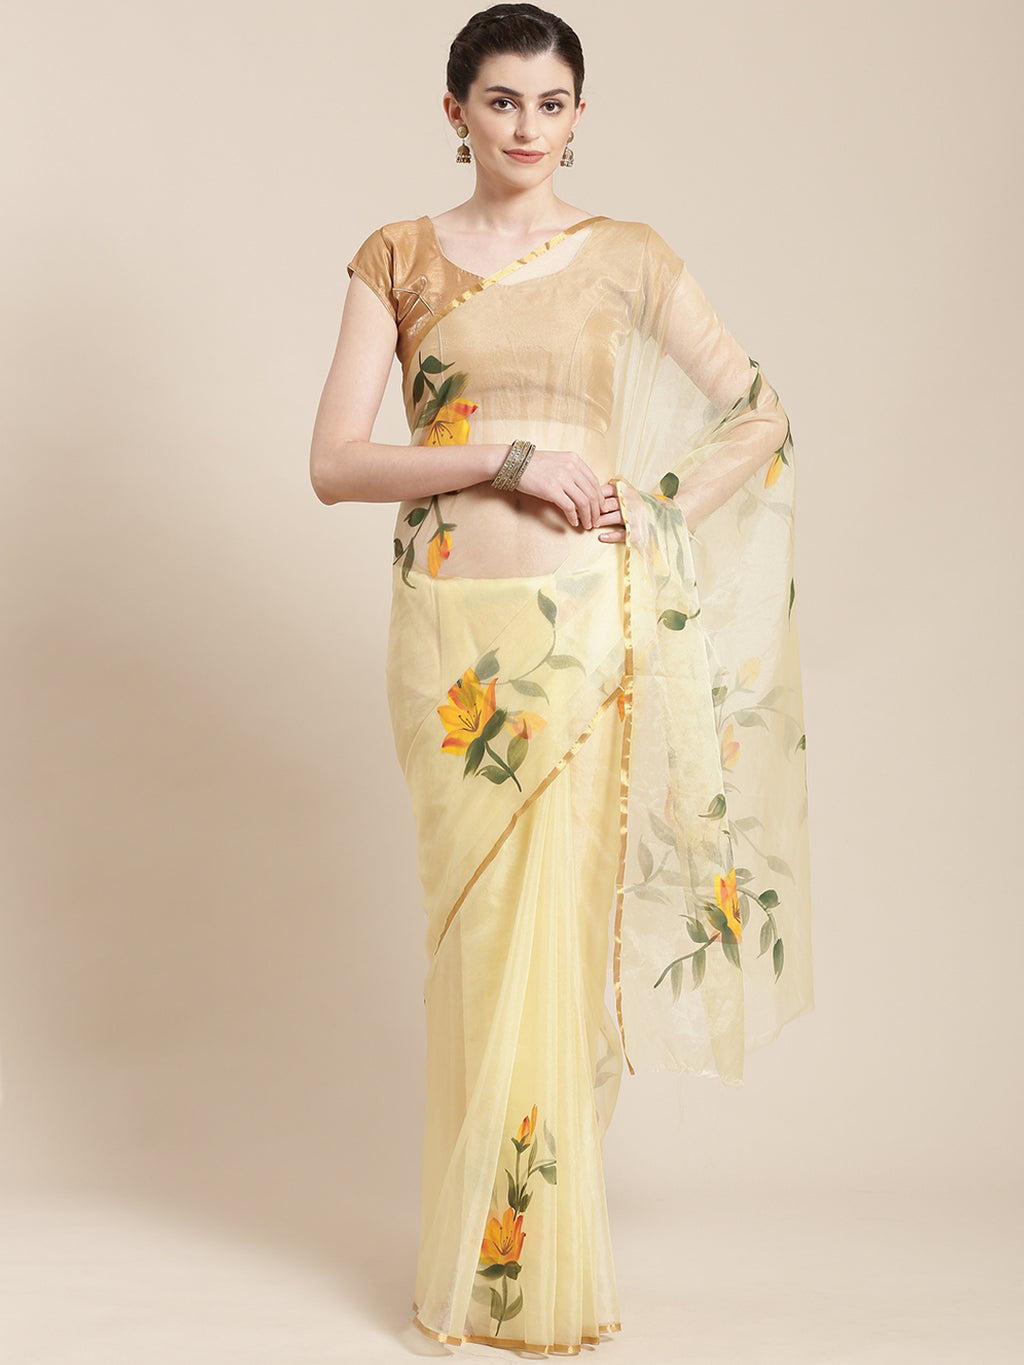 Yellow & Green Floral Hand Painted Organza Saree-Saree-Kalakari India-BHKPSA0126-Hand Painted, Organza, Sarees, Sustainable Fabrics, Traditional Weave-[Linen,Ethnic,wear,Fashionista,Handloom,Handicraft,Indigo,blockprint,block,print,Cotton,Chanderi,Blue, latest,classy,party,bollywood,trendy,summer,style,traditional,formal,elegant,unique,style,hand,block,print, dabu,booti,gift,present,glamorous,affordable,collectible,Sari,Saree,printed, holi, Diwali, birthday, anniversary, sustainable, organic, sc